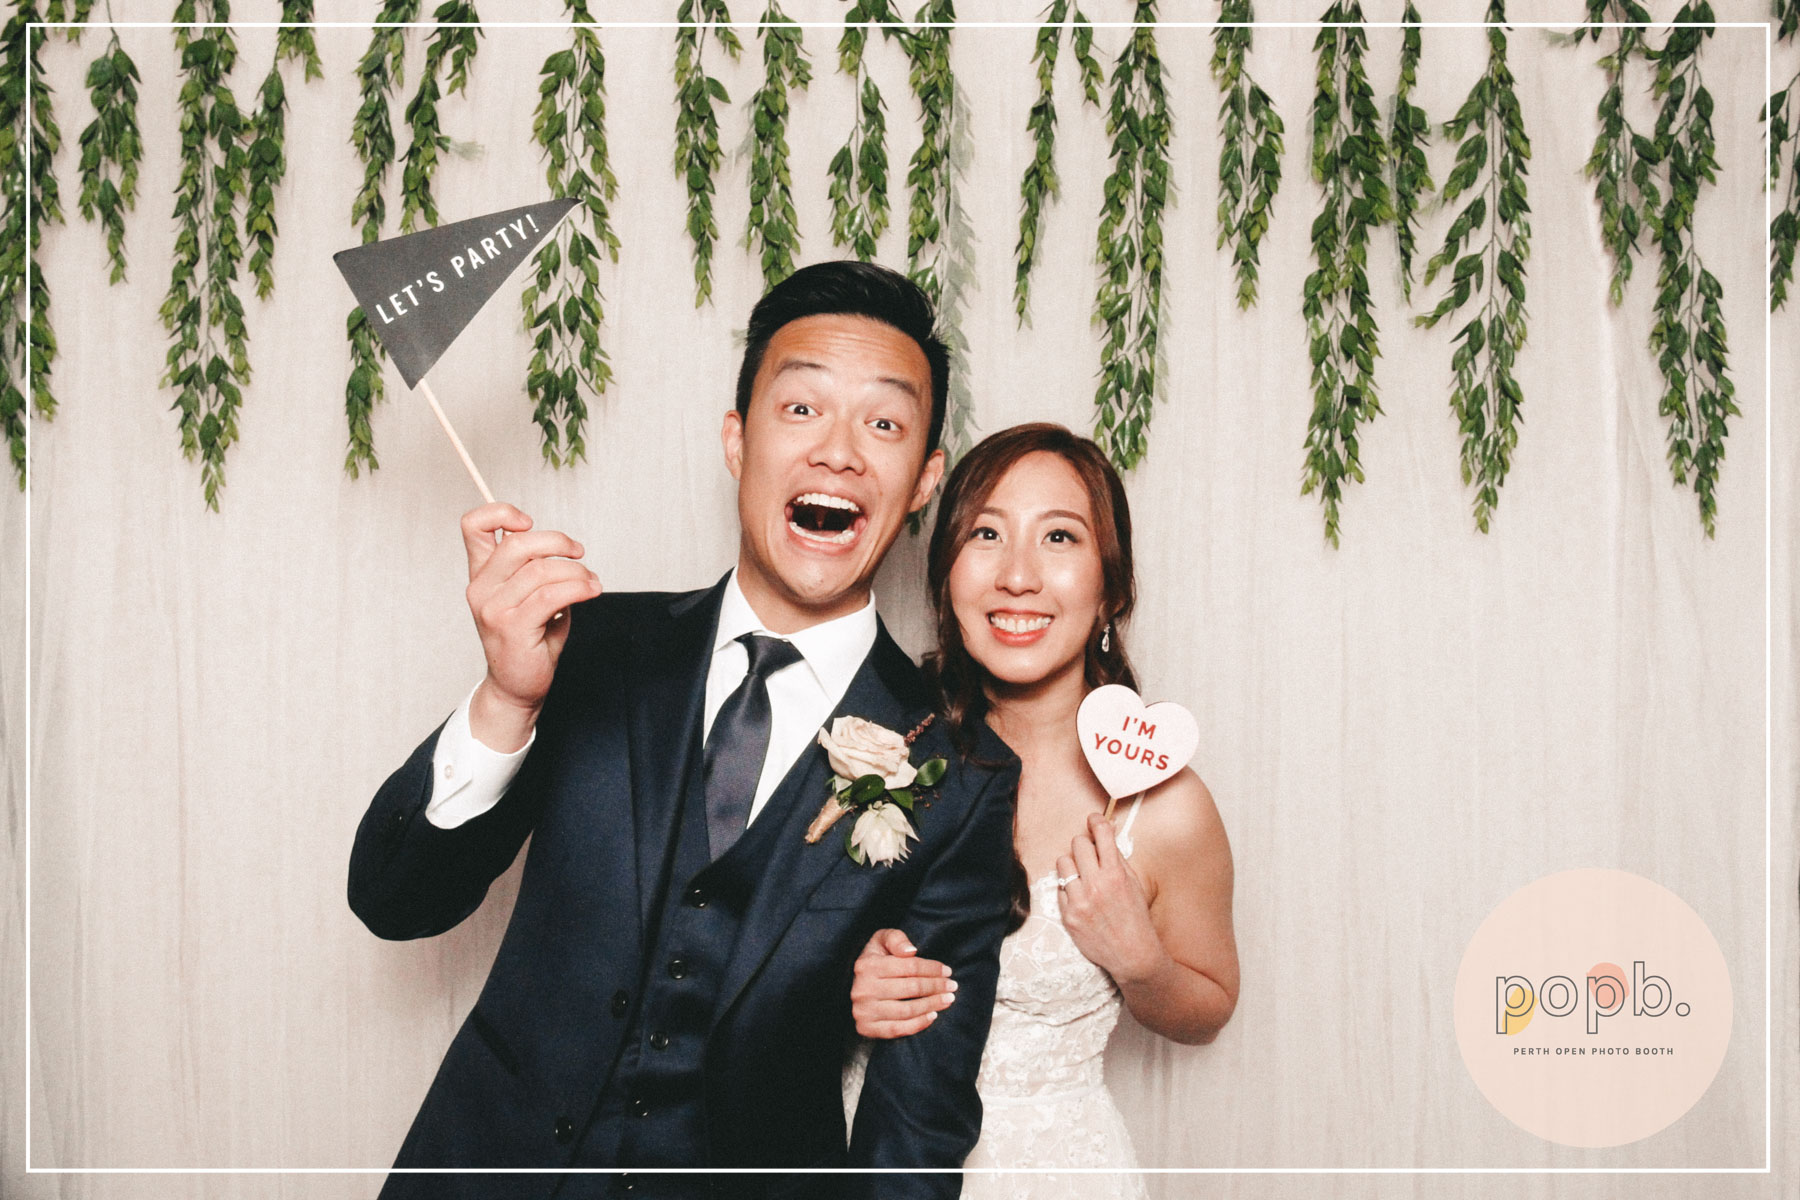 dave + esther's wedding - pASSWORD: PROVIDED ON THE night- ALL LOWERCASE -